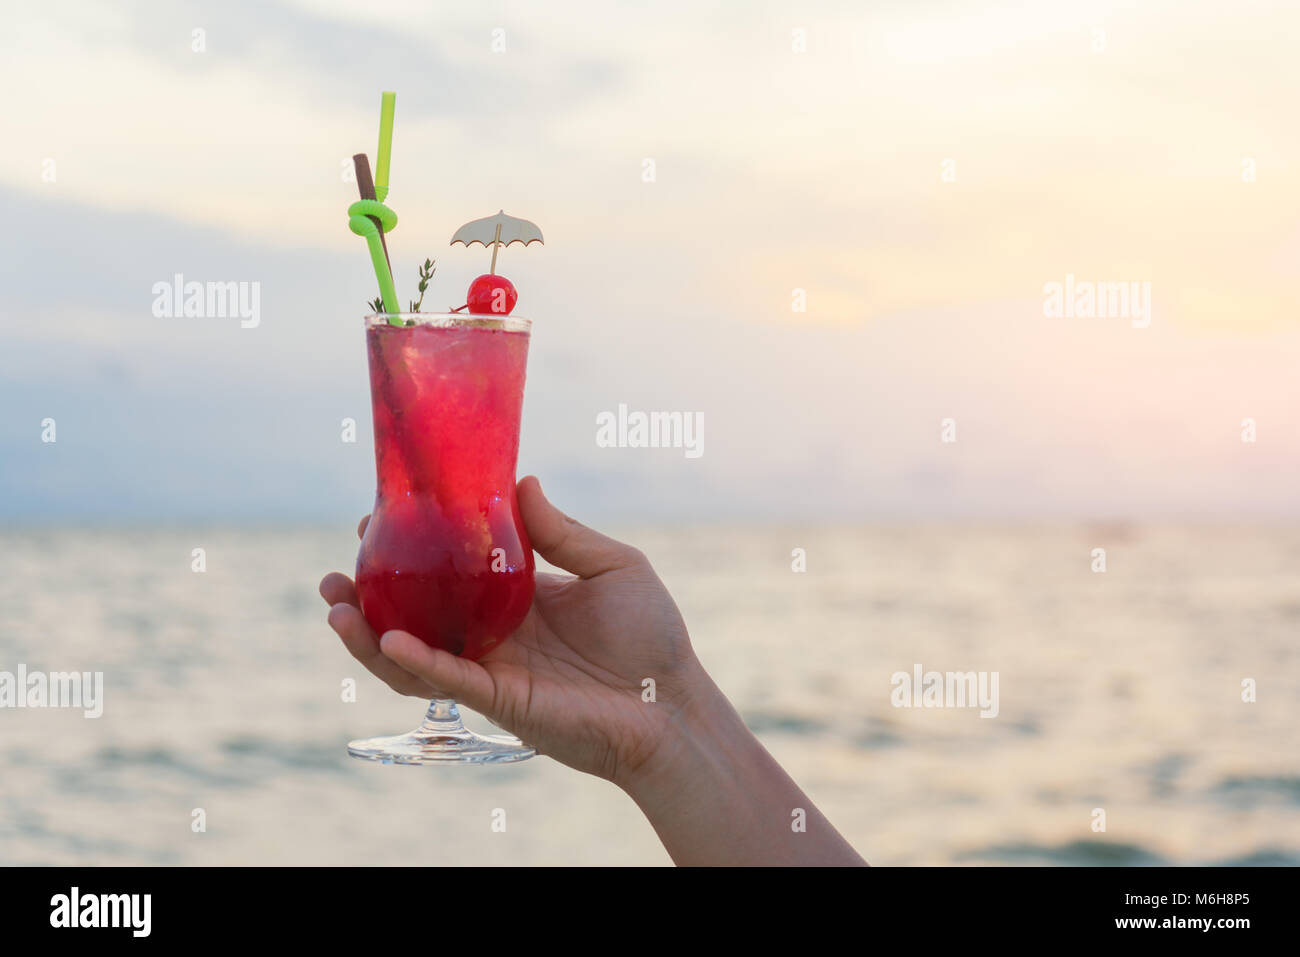 Mano azienda red cocktail drink in twilight sea & sky background. Estate, vacanze, viaggi e vacanze concetto. Immagini Stock